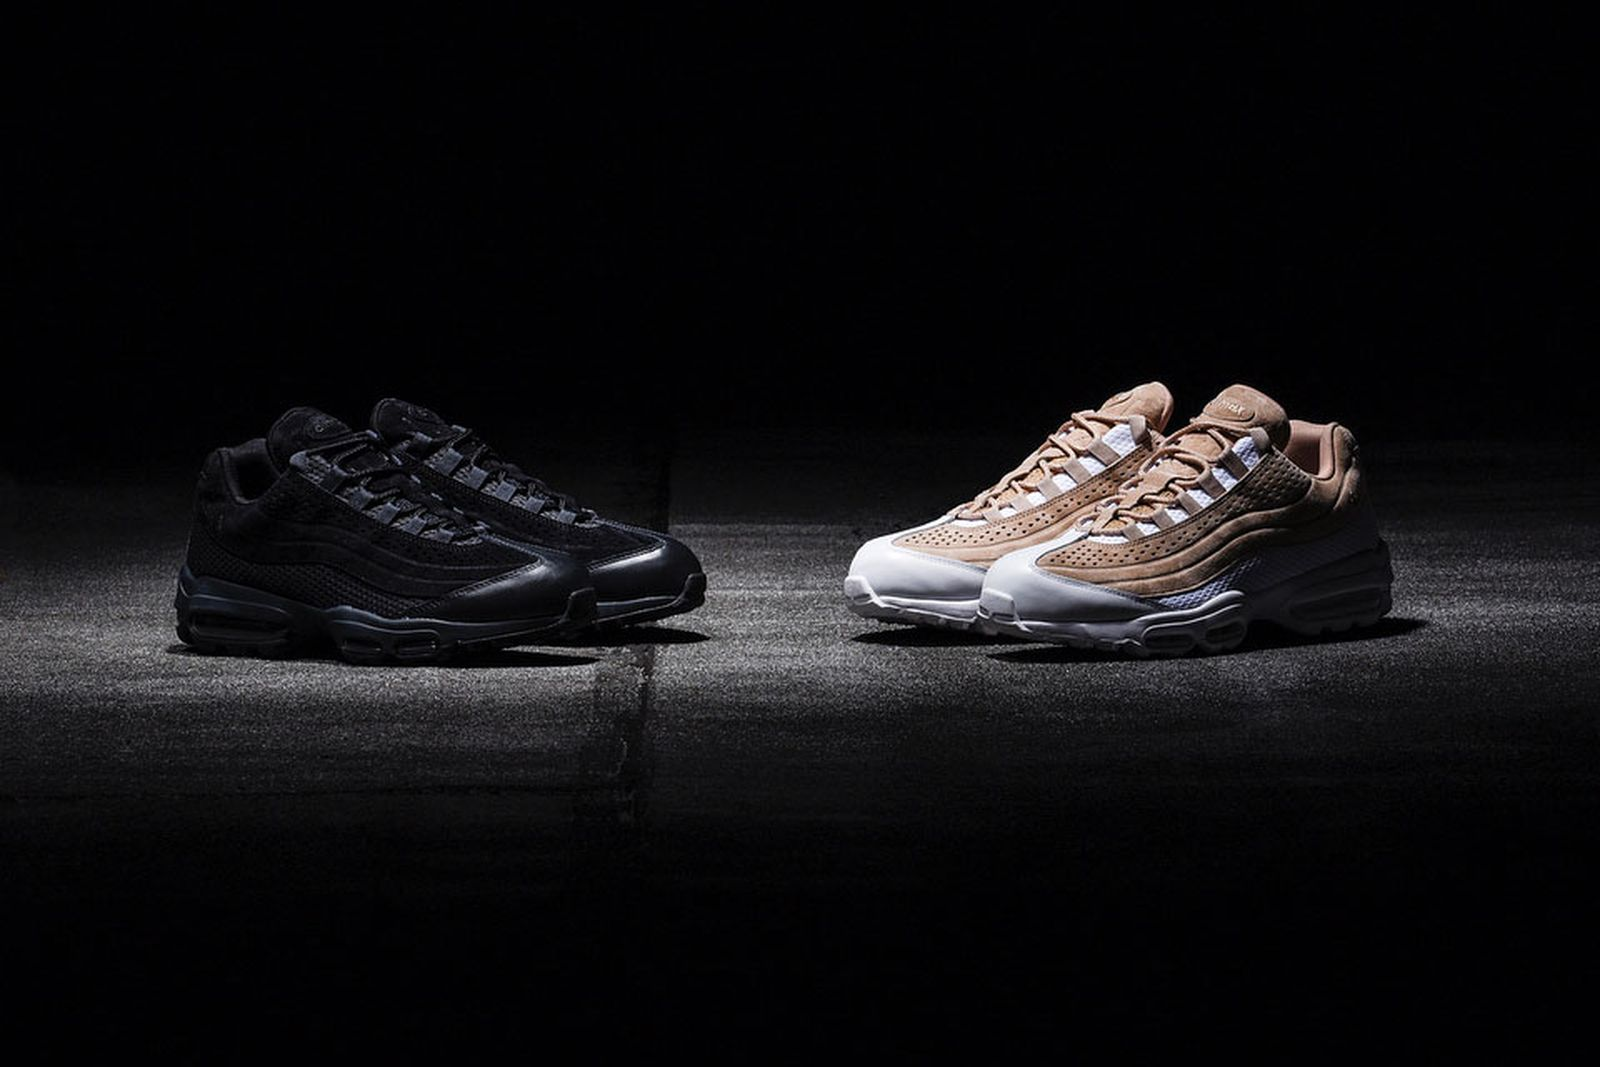 nike-air-max-95-ultra-prm-breathe-pack-release-date-buy-01